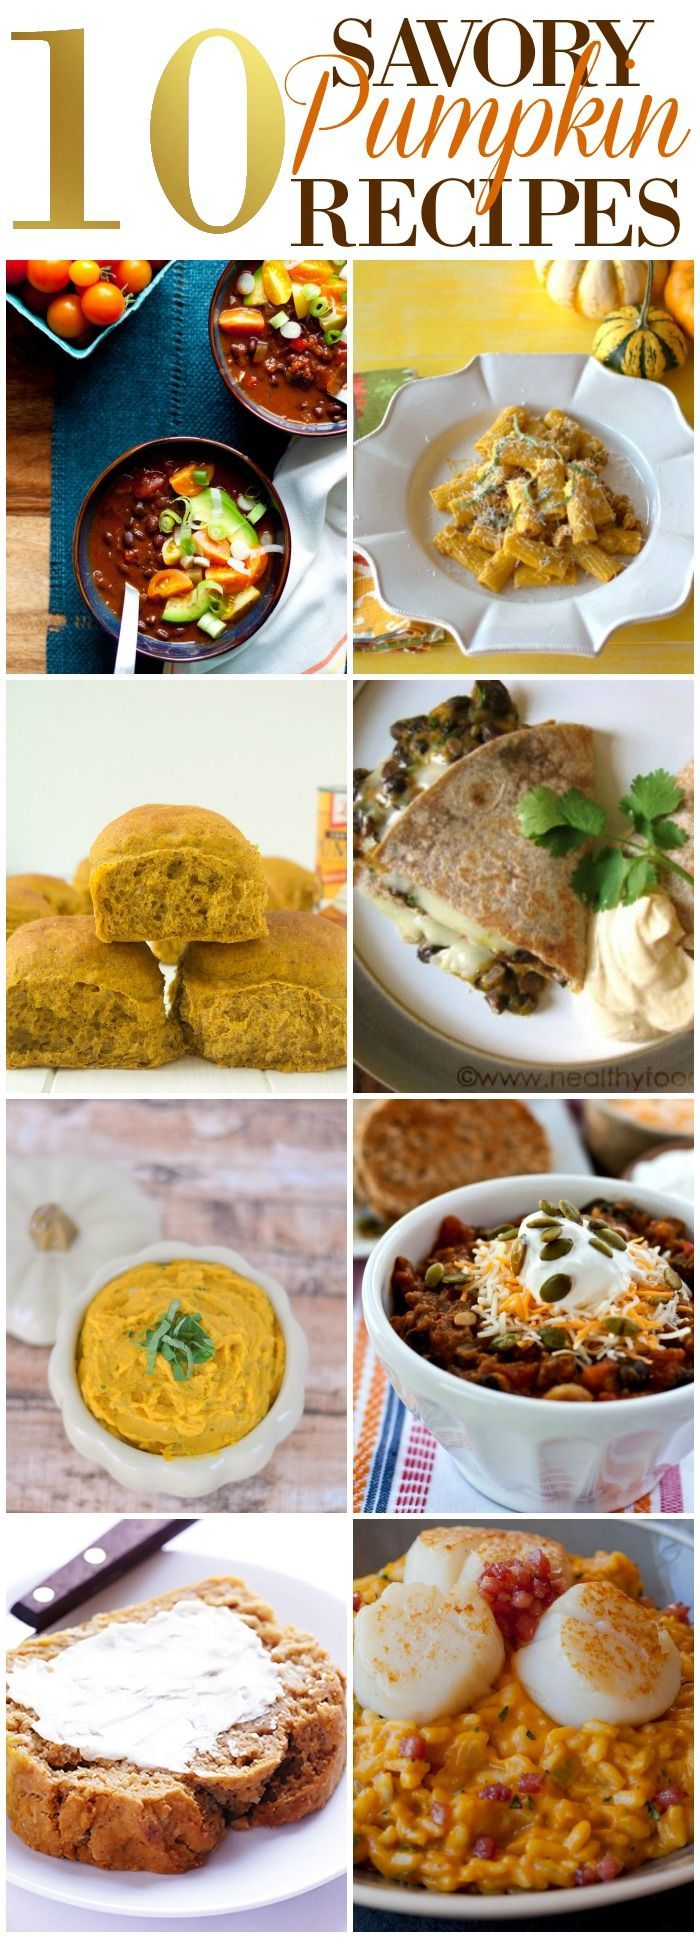 During the Fall sometimes you just need a good, ol' savory pumpkin recipe. Here's my collection of 10 Savory Pumpkin Recipes roundup!   Roundup   Pumpkin Recipes   Fall Recipe